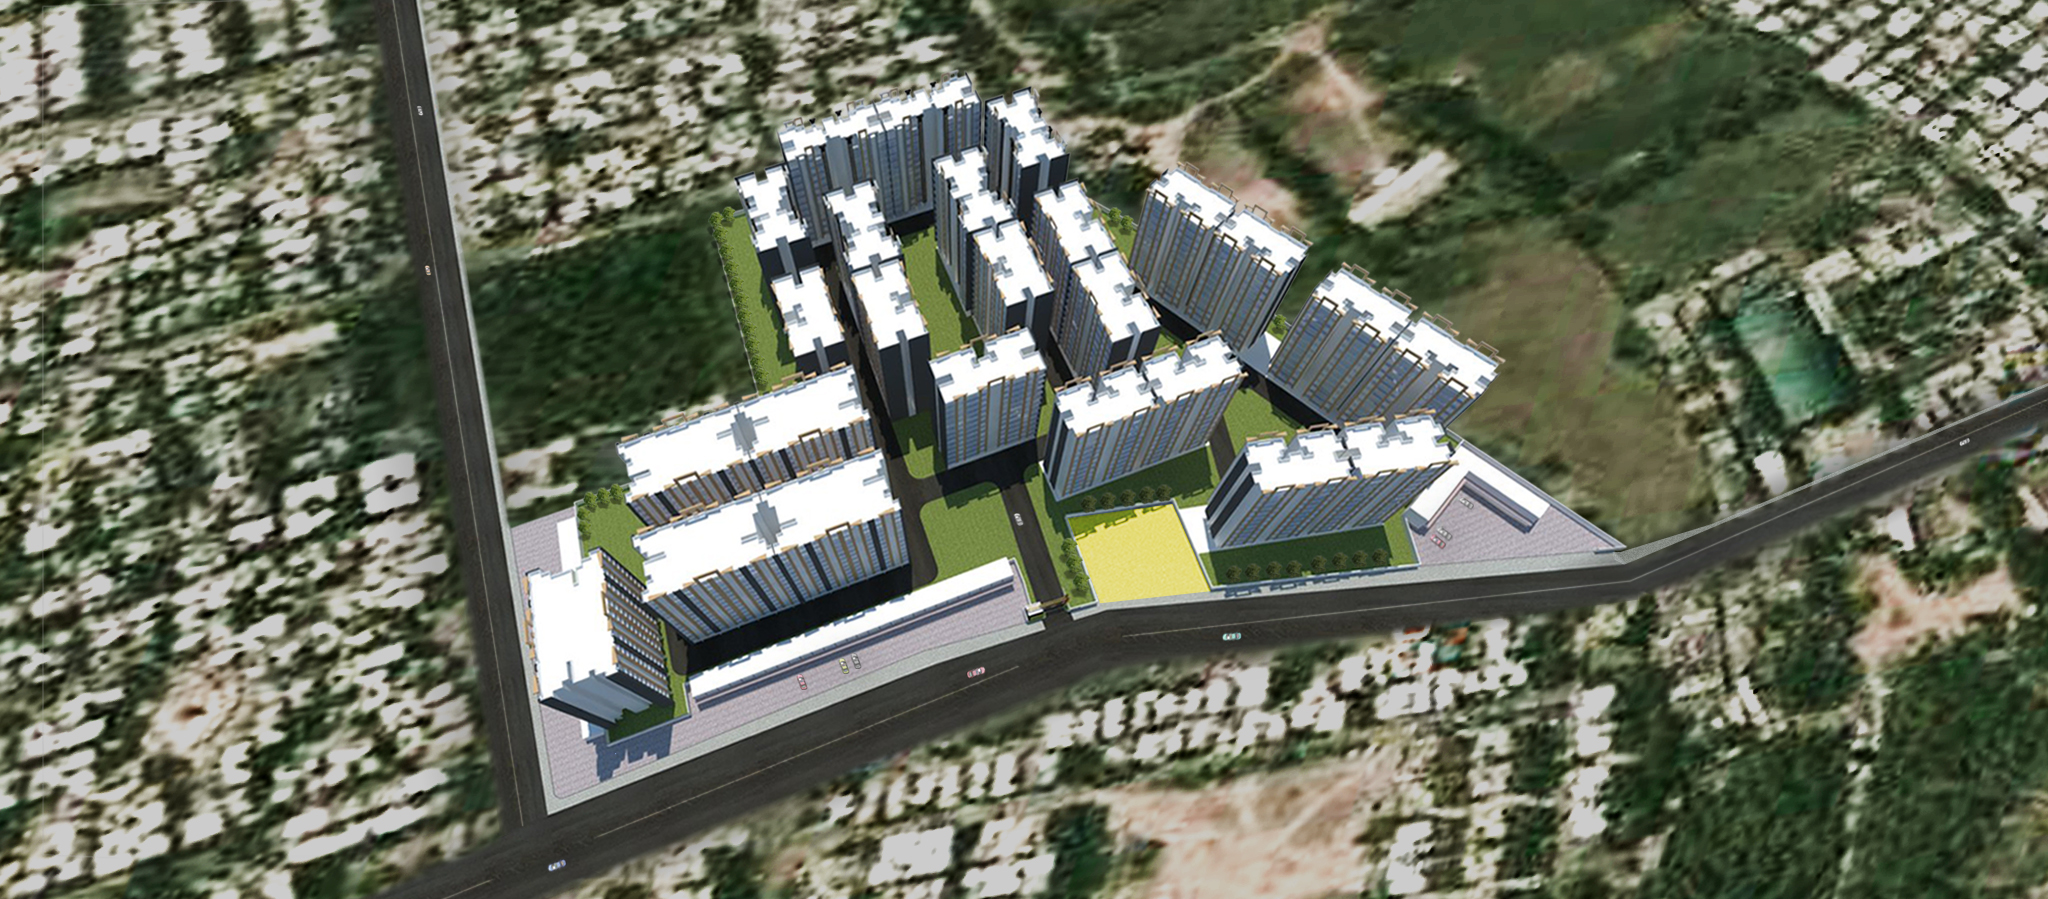 Gujarat Housing board birds eye view